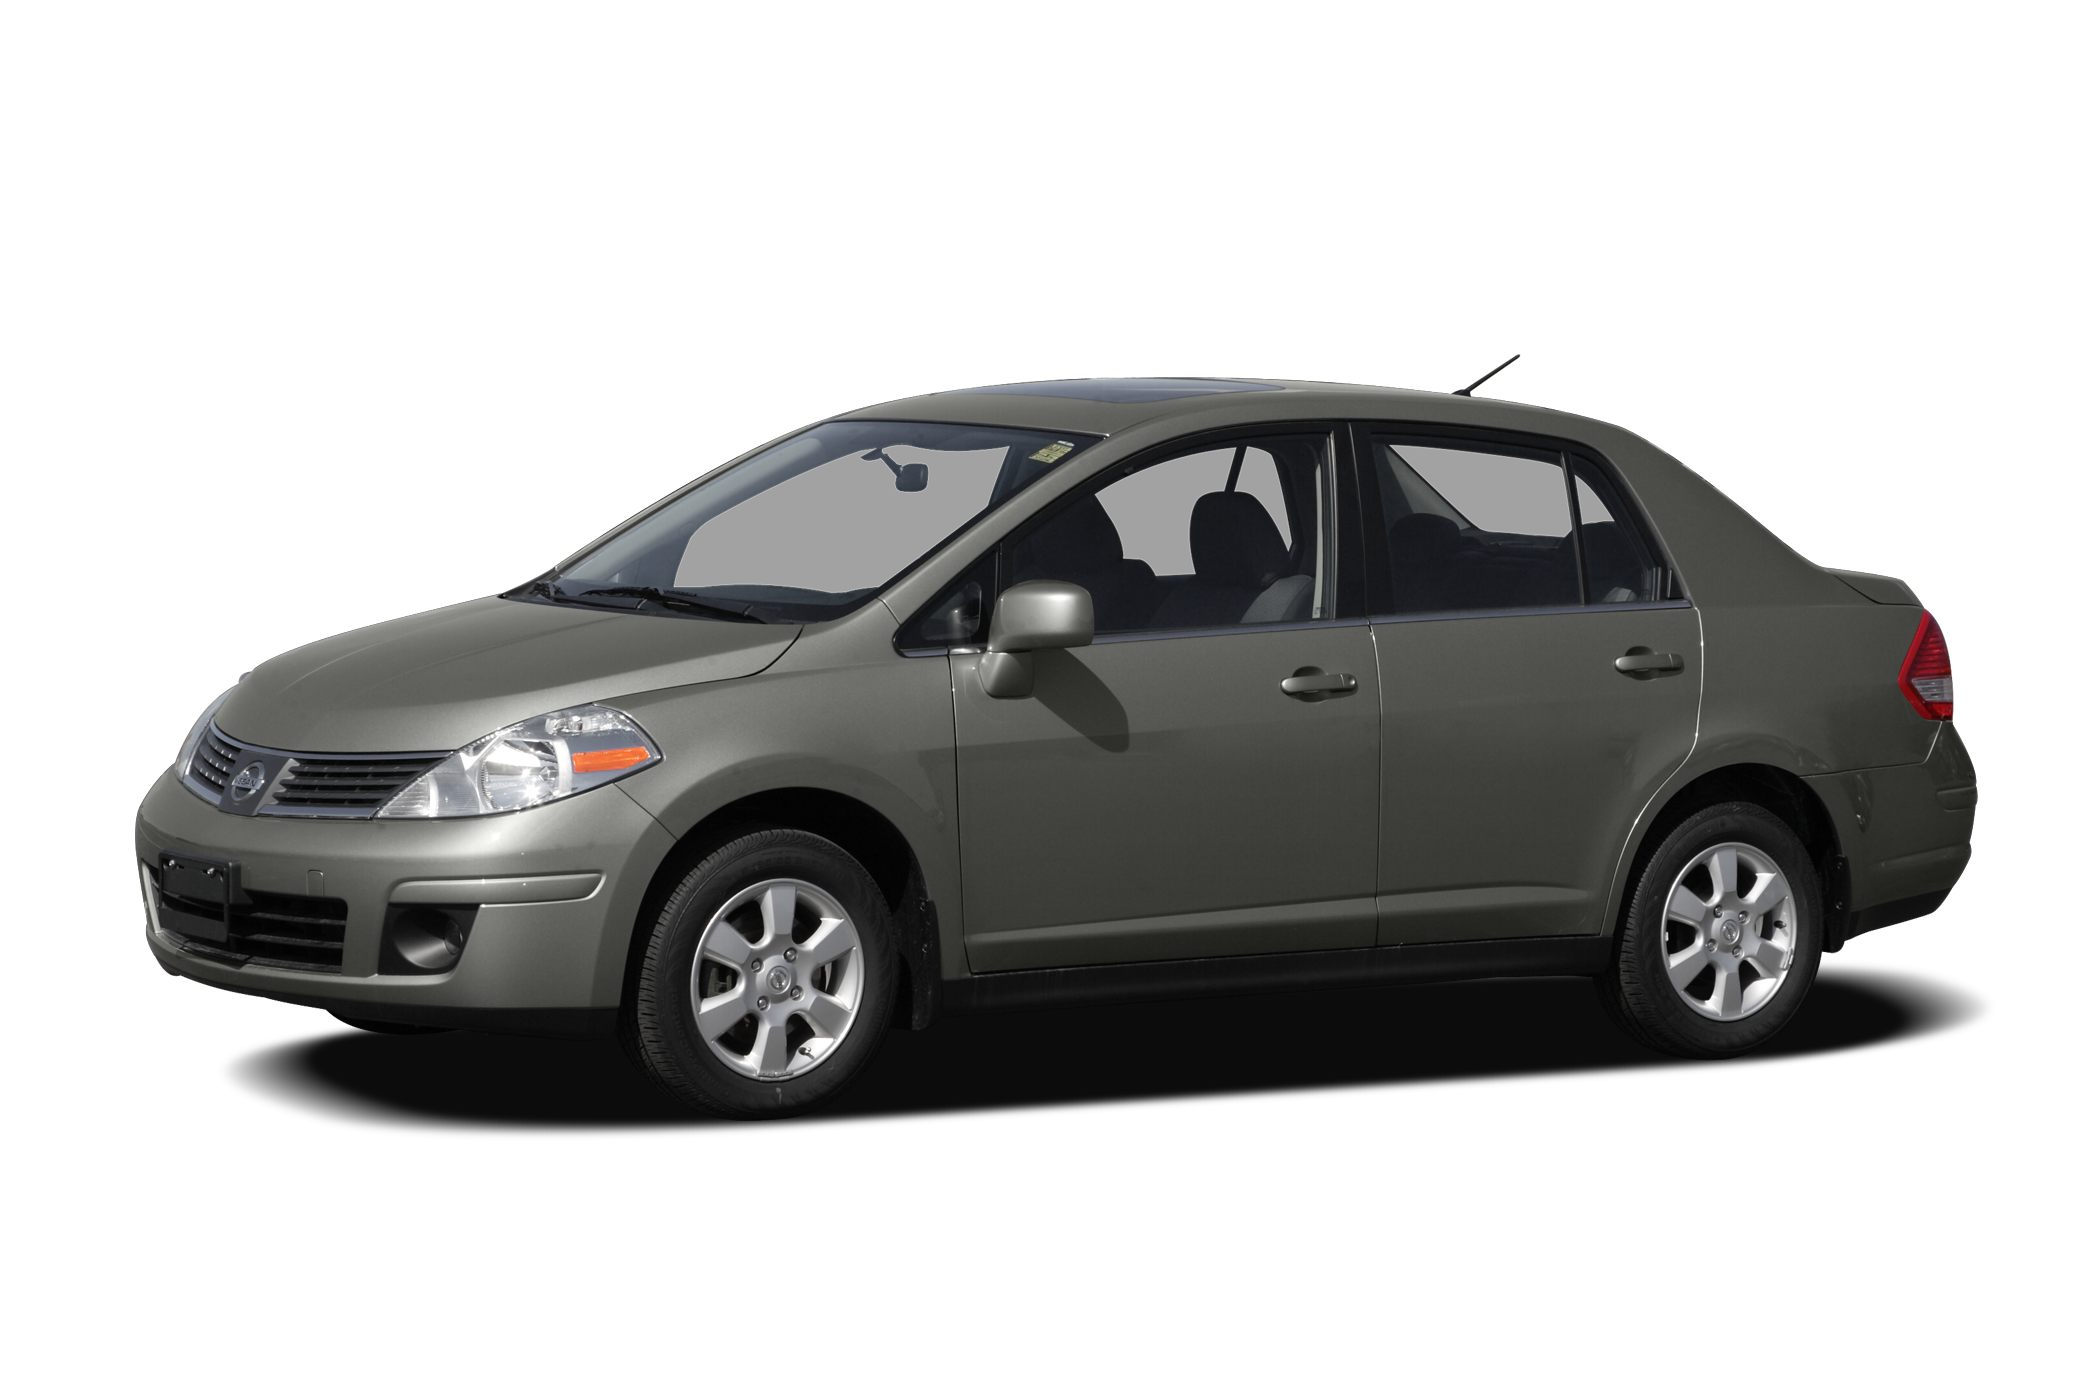 2008 Nissan Versa S Hatchback for sale in Federal Way for $8,999 with 118,703 miles.